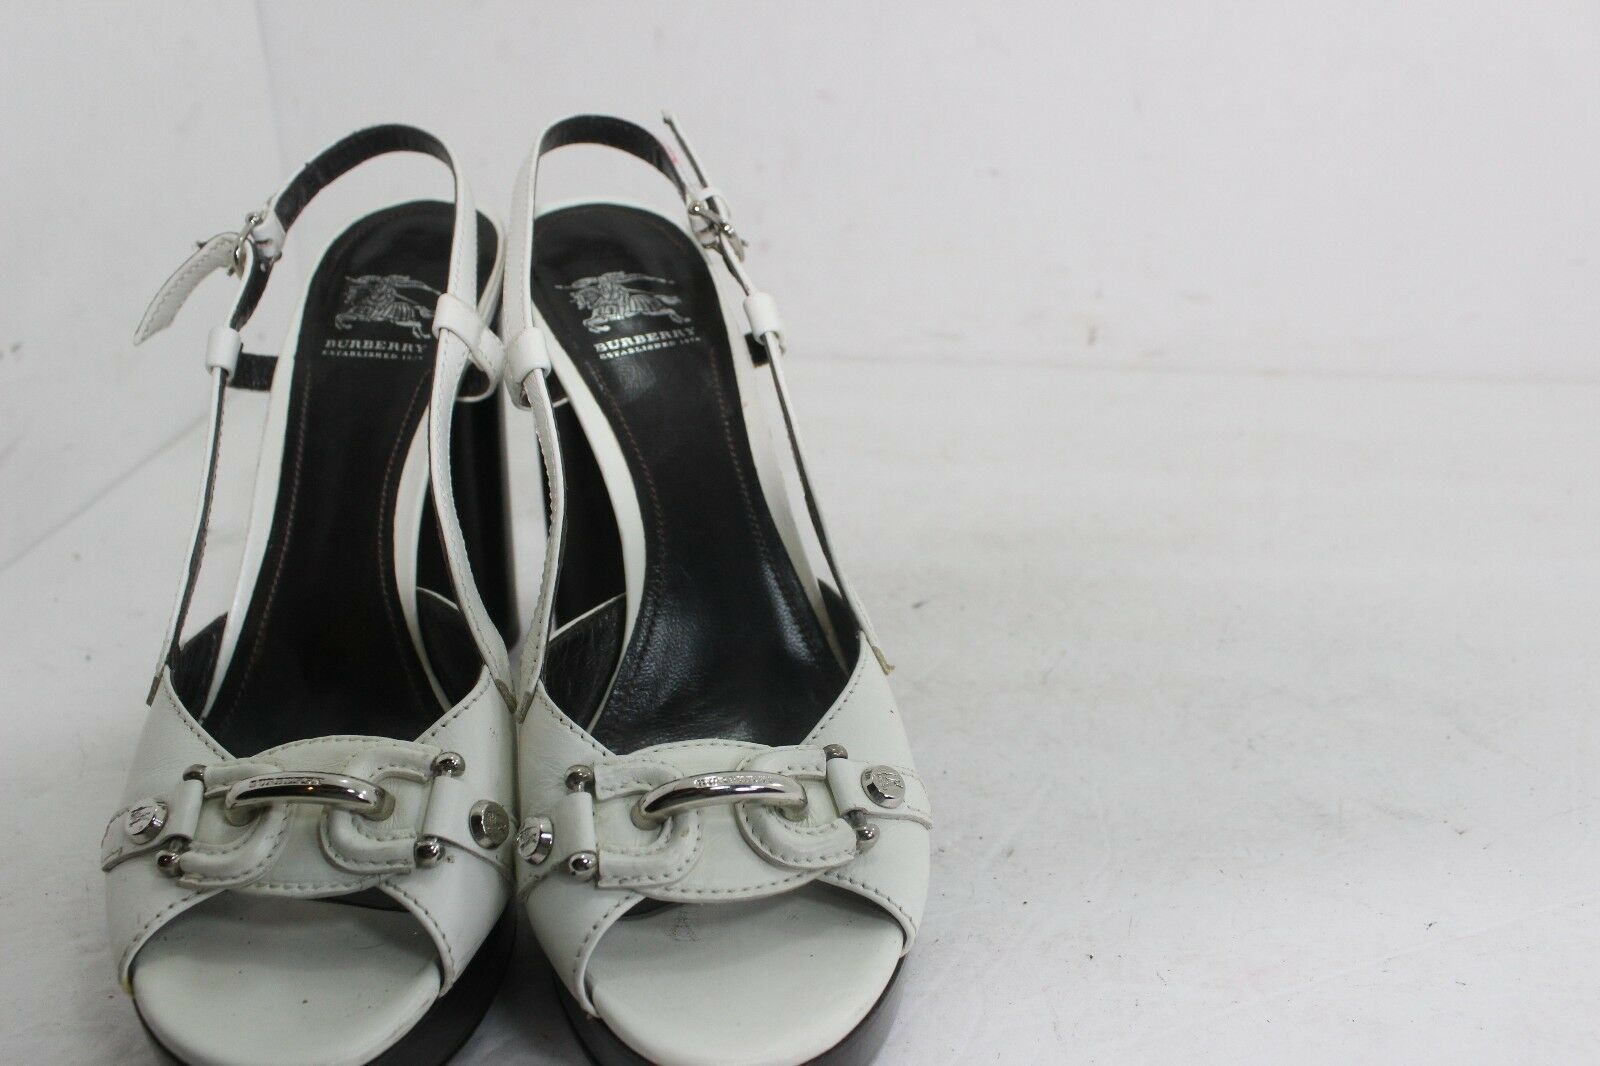 BURBERRY PLATFORM MADE Weiß MADE PLATFORM IN ITALY SZ 40.5 USA 10 IN GREAT CONDITION 90e91d